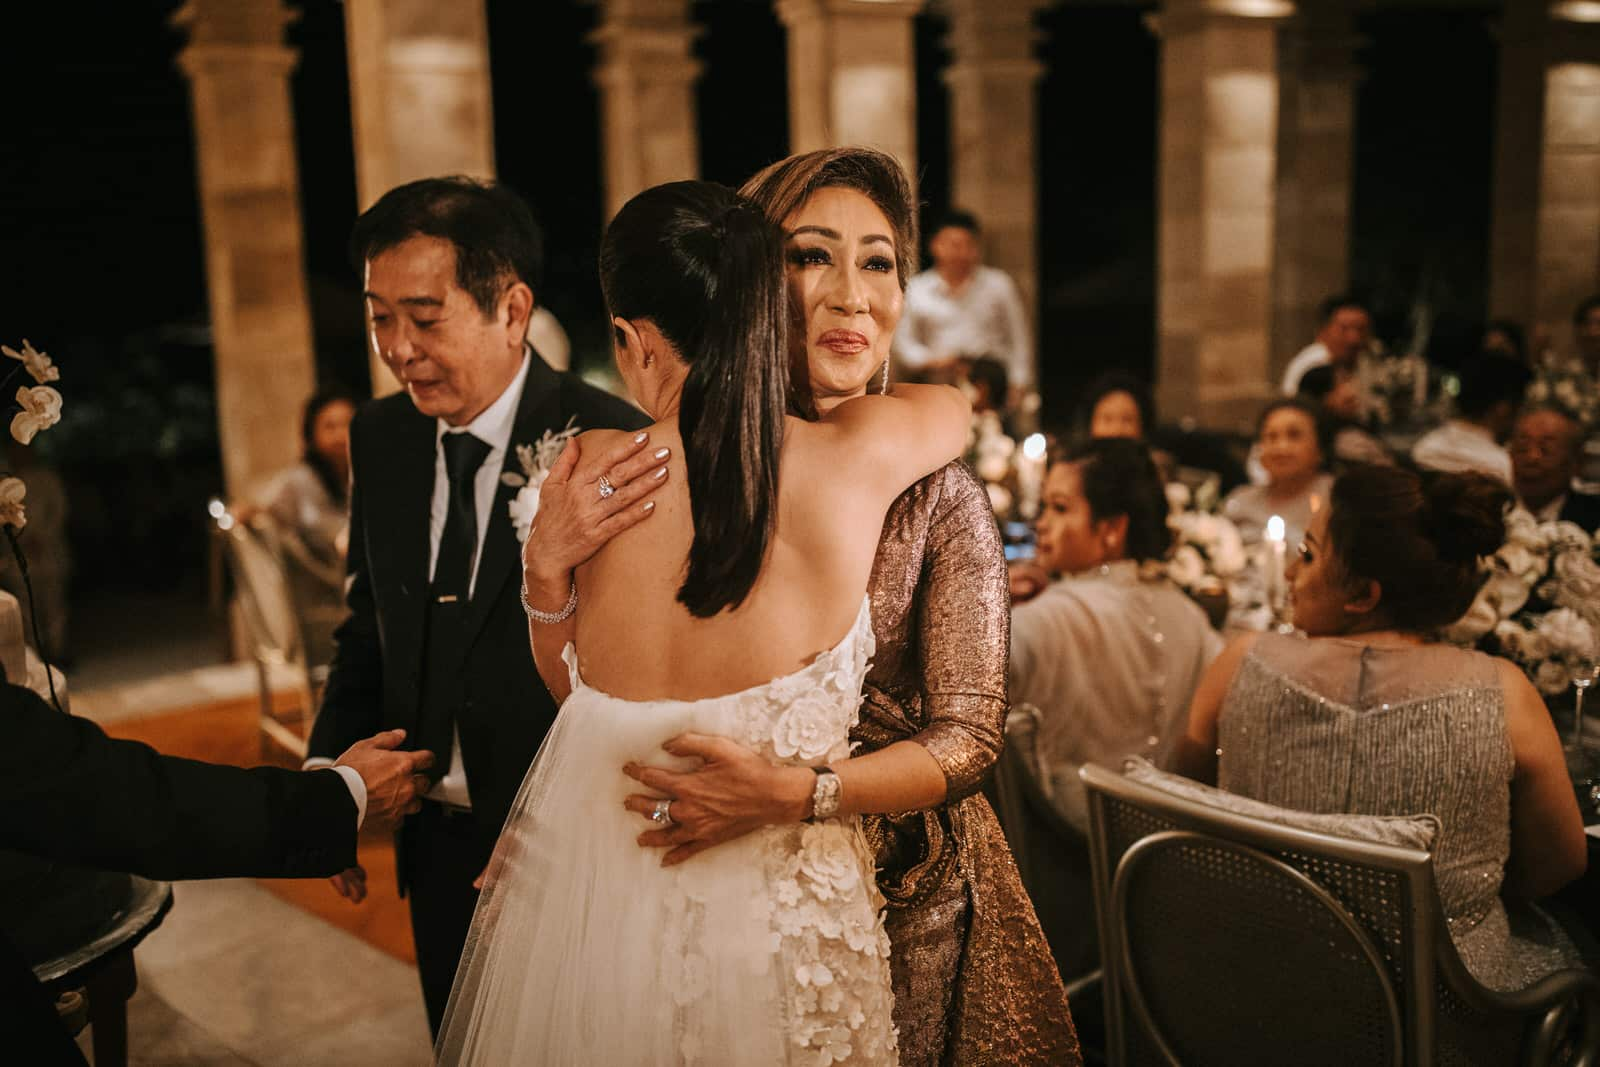 The bride is hugging her mother.